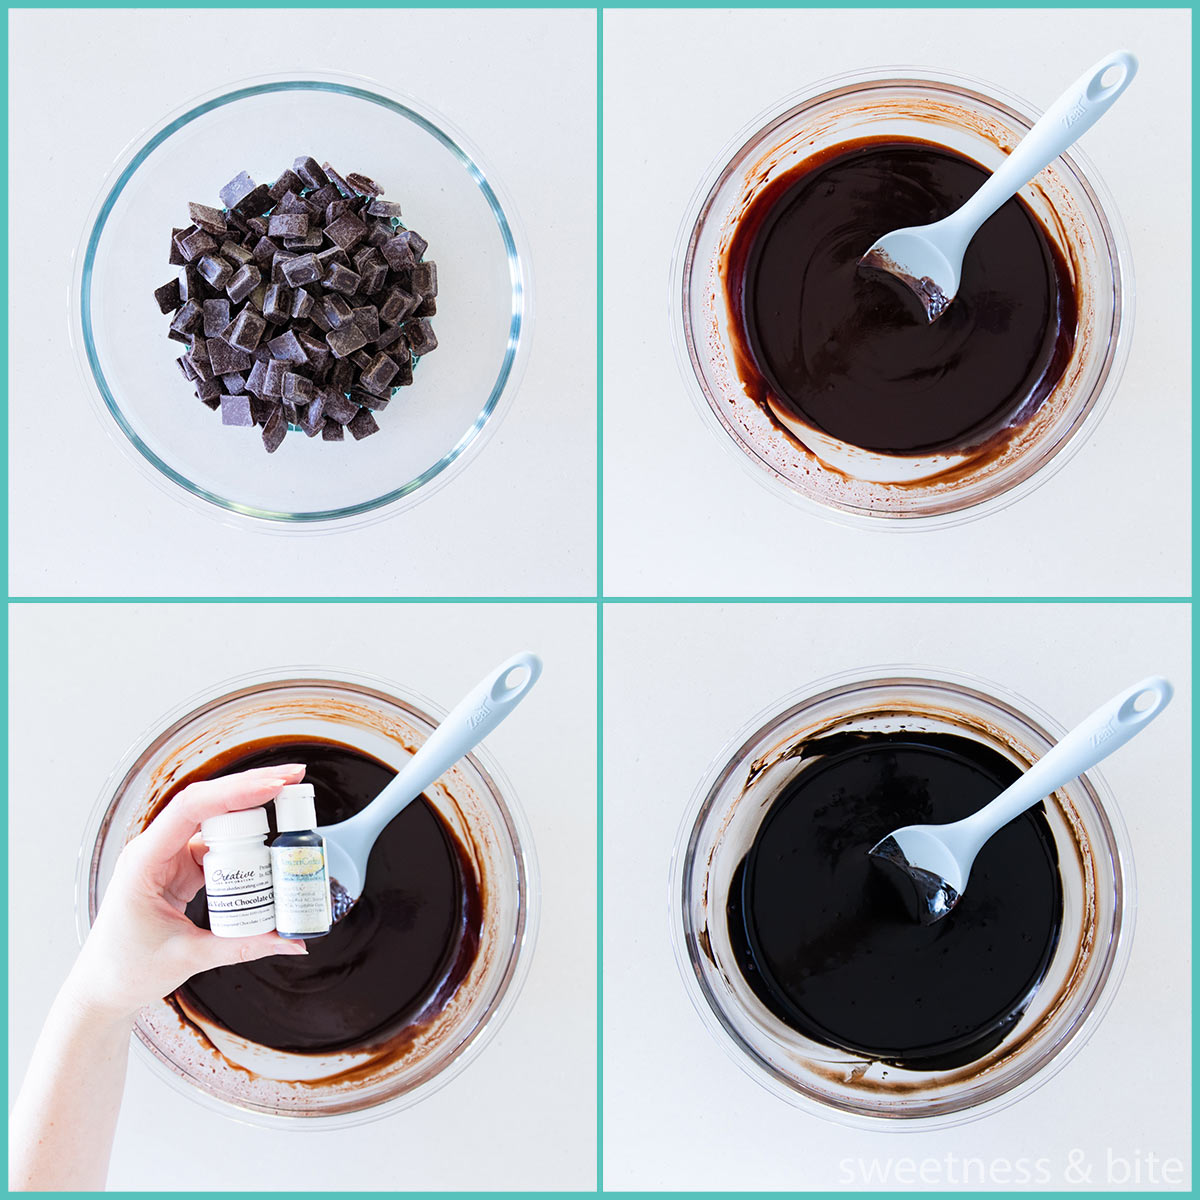 Collage showing the stages of making black chocolate ganache.